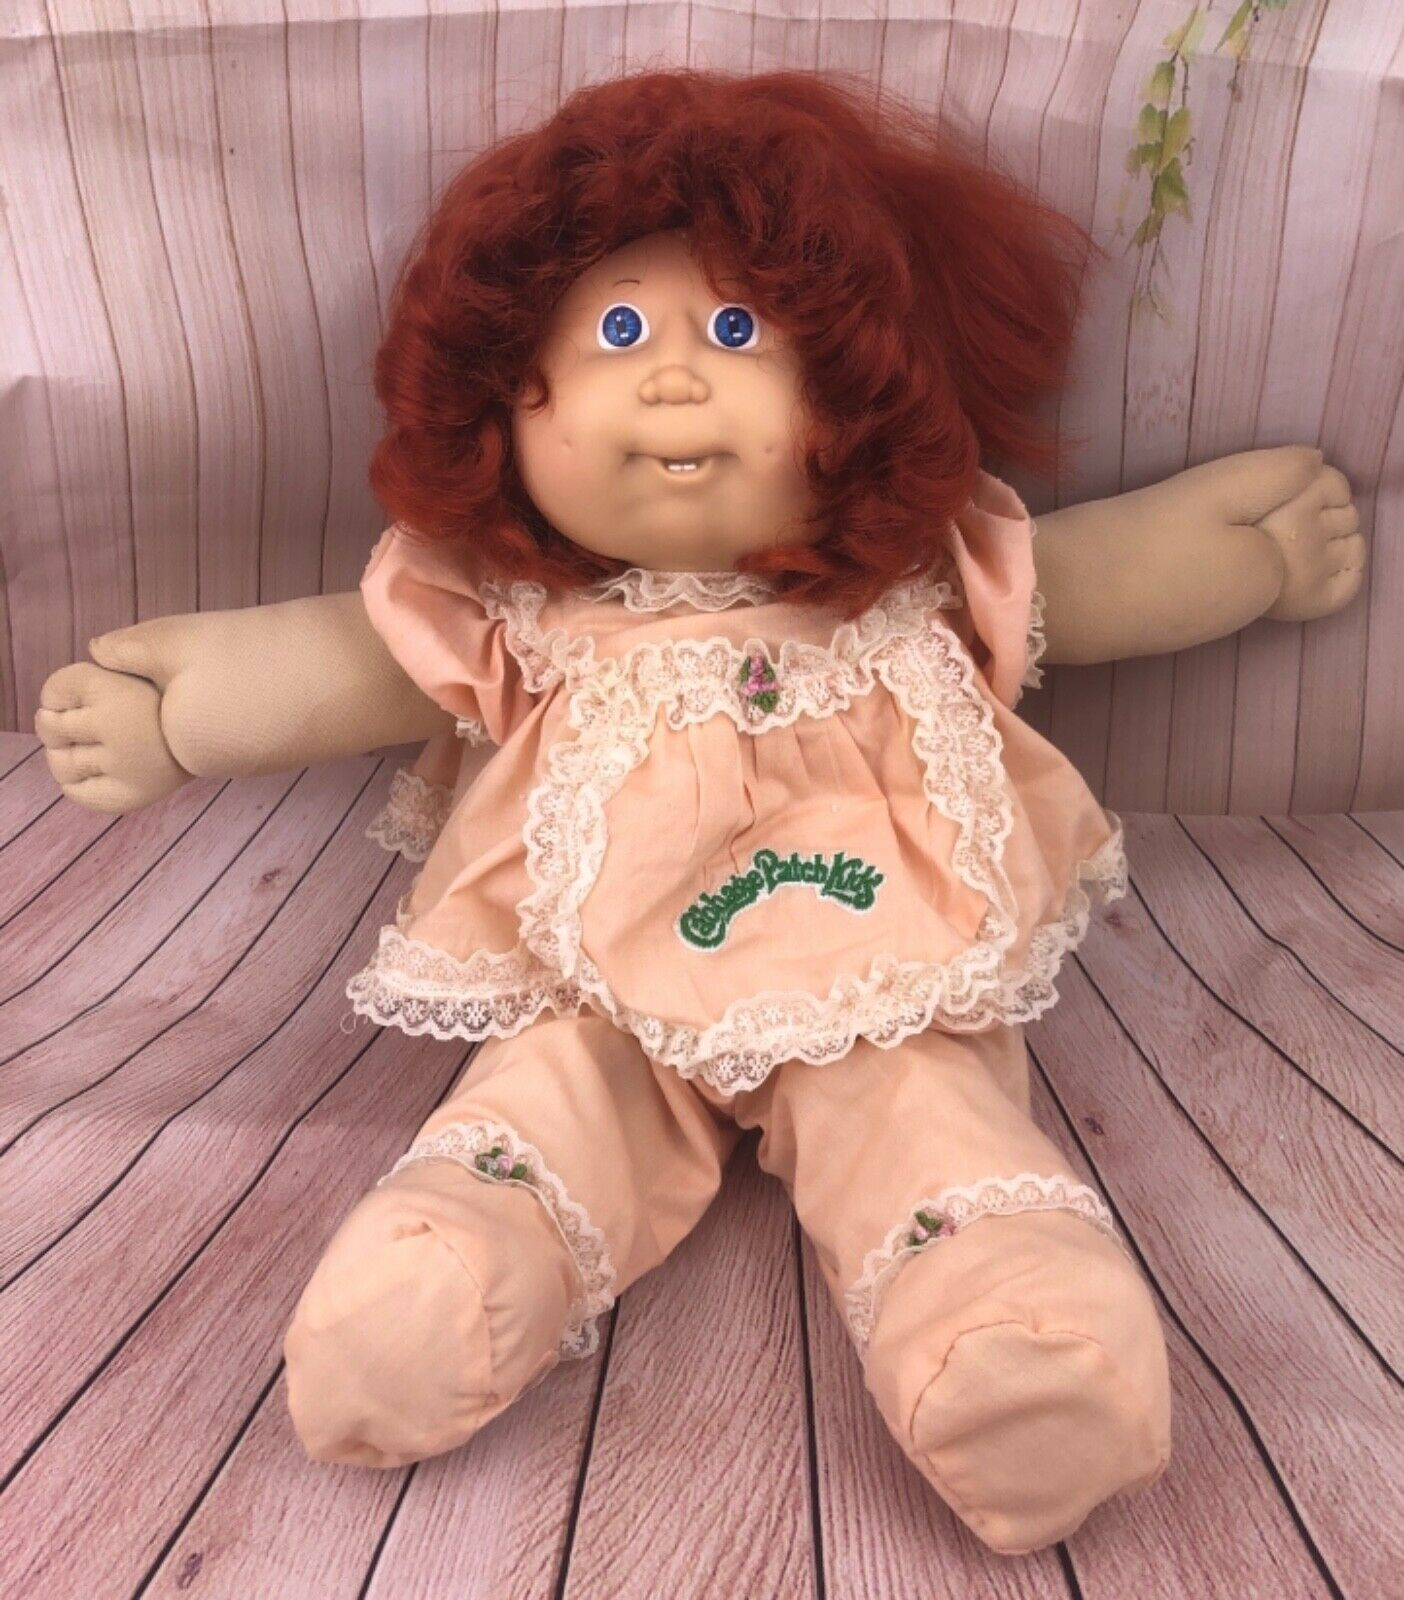 Vintage 1986 Cabbage Patch Kids Doll Redhead Girl With Corn Silk Hair Teeth Ebay Cabbage Patch Kids Vintage Cabbage Patch Dolls Cabbage Patch Kids Dolls